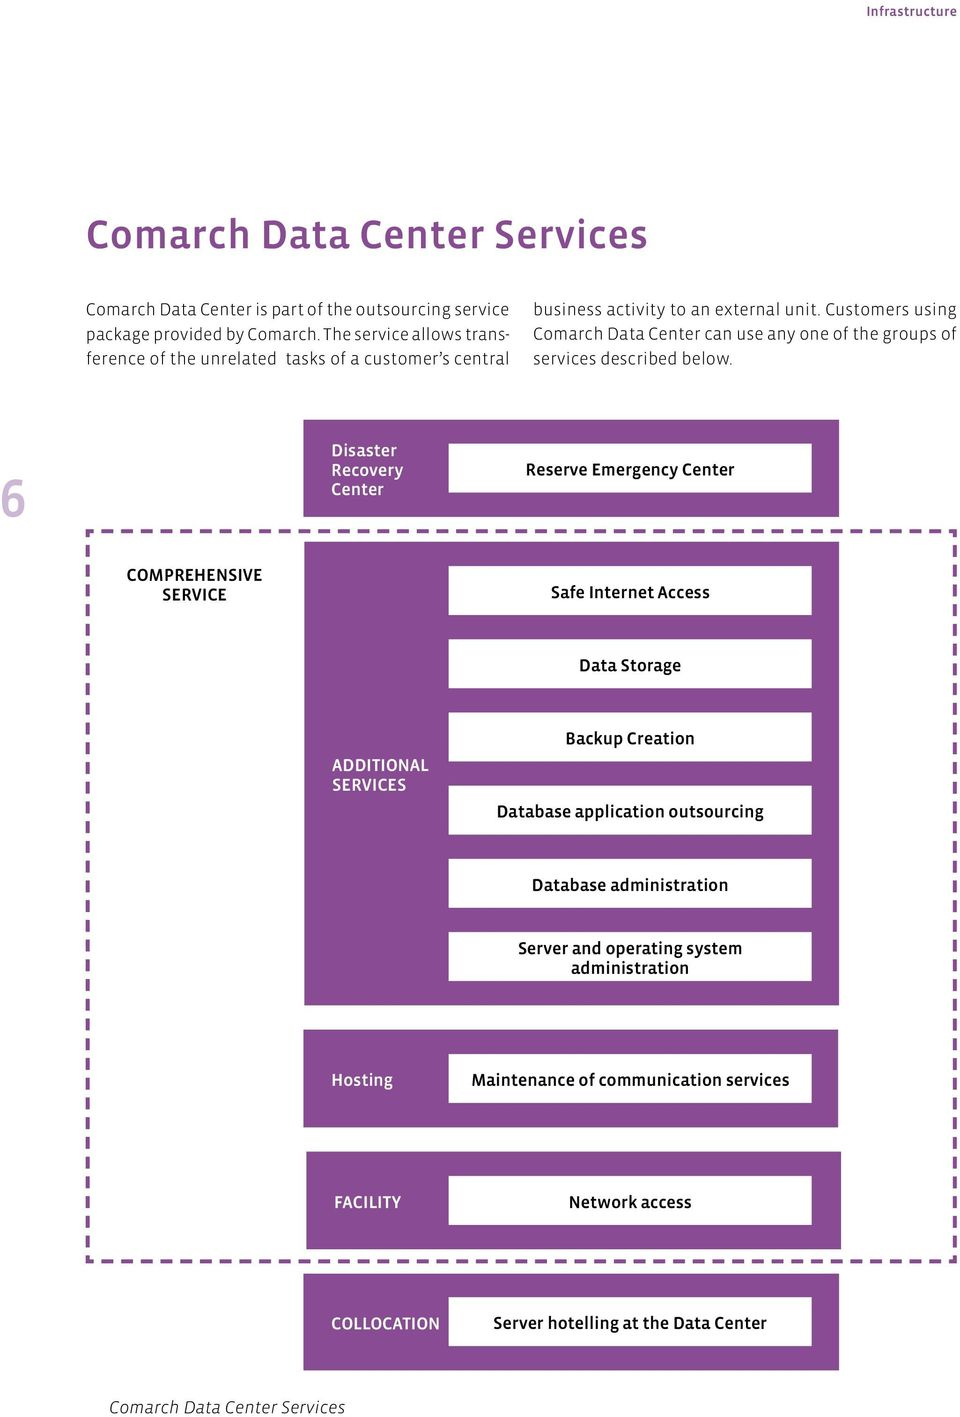 Customers using Comarch Data Center can use any one of the groups of services described below.